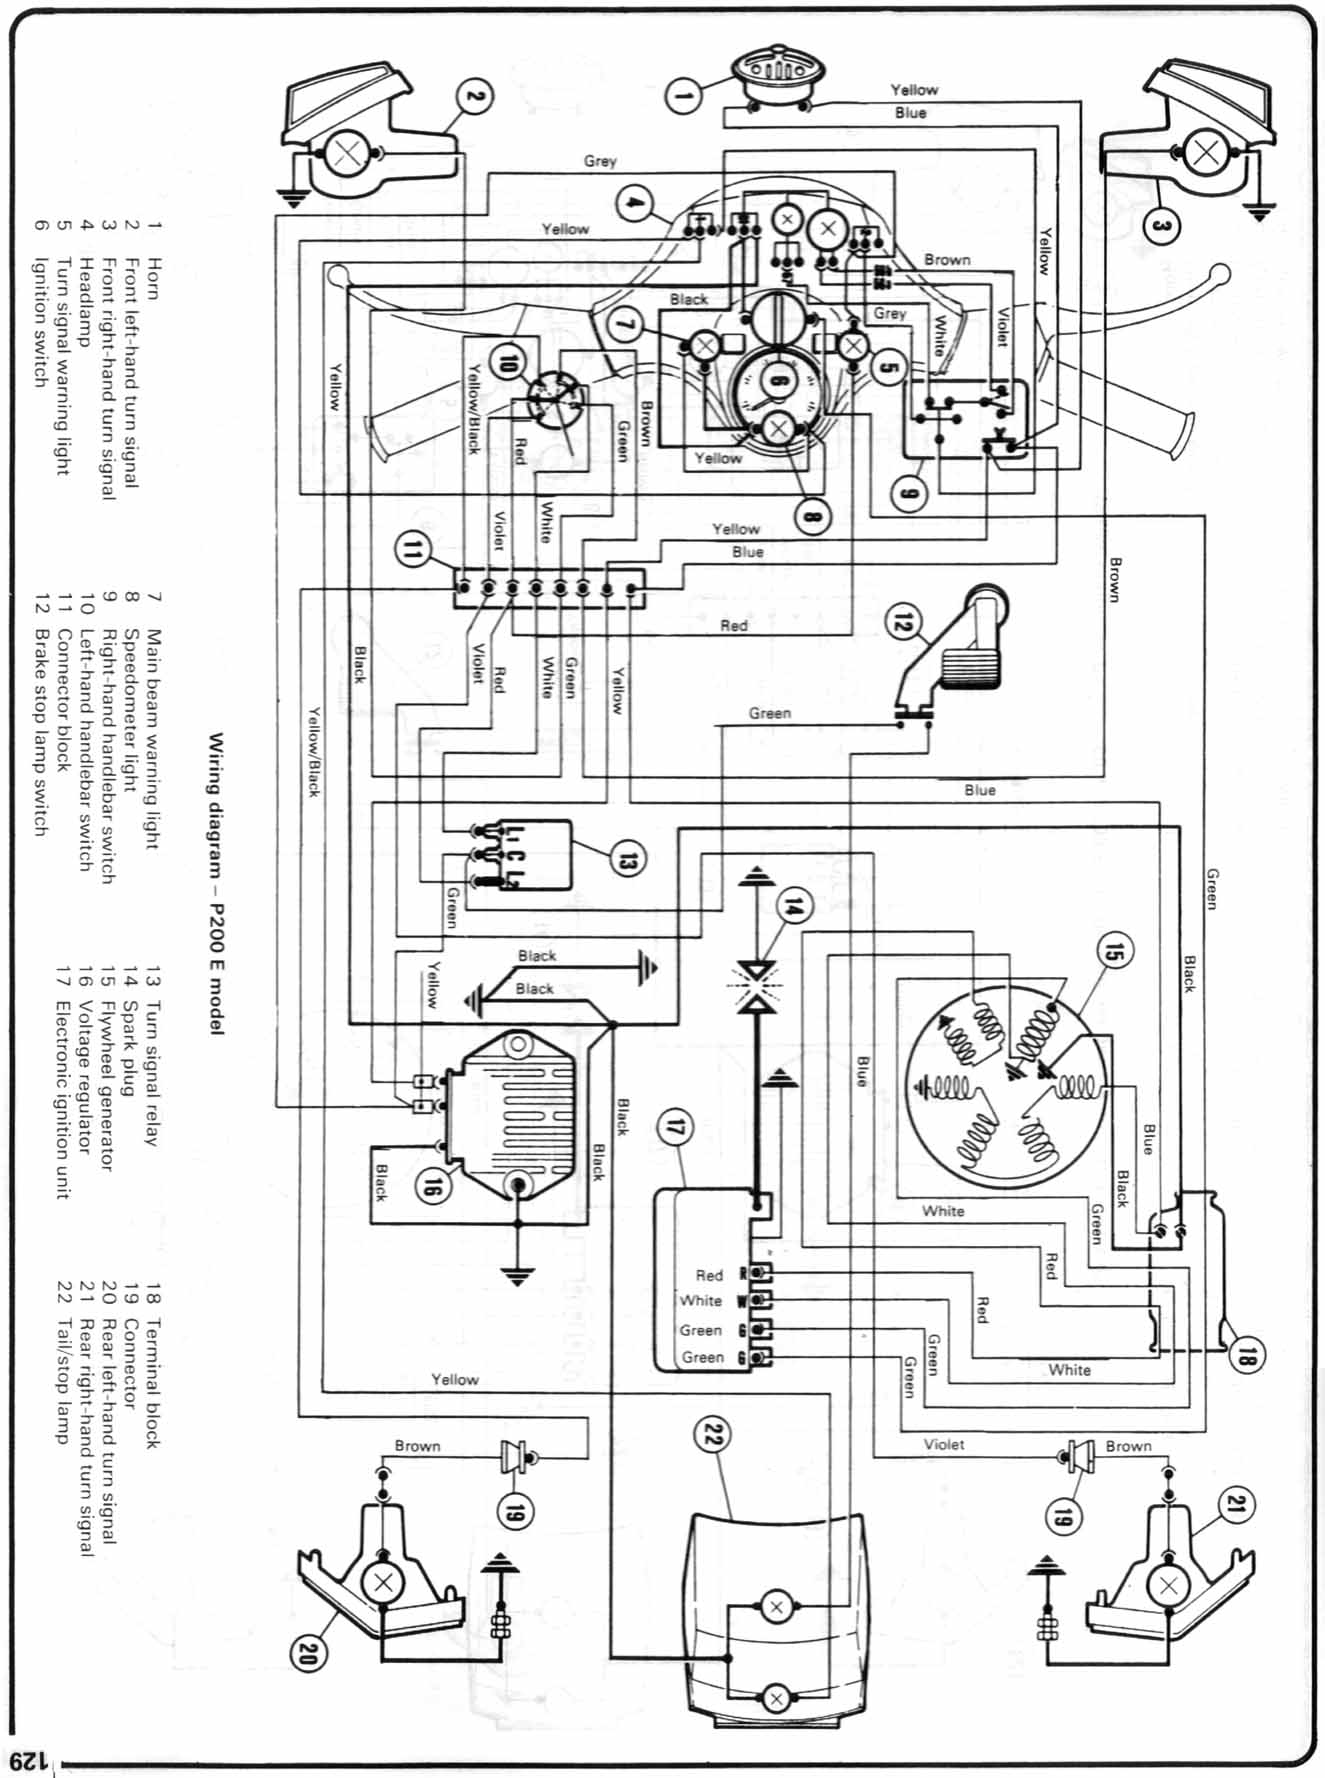 wiring diagram vespa t5 with Diag on Shop content furthermore 2001 Vespa Wiring Diagram Gandul 45 77 79 119 Modern Vespa Wiring Issues Wiring Diagram Schematics 2001 Vespa Wiring Diagram Vespa Light Switch Wiring Diagram further T5 Engine Diagram as well 231794712048745304 moreover Modelli Di Impianto Elettrico.